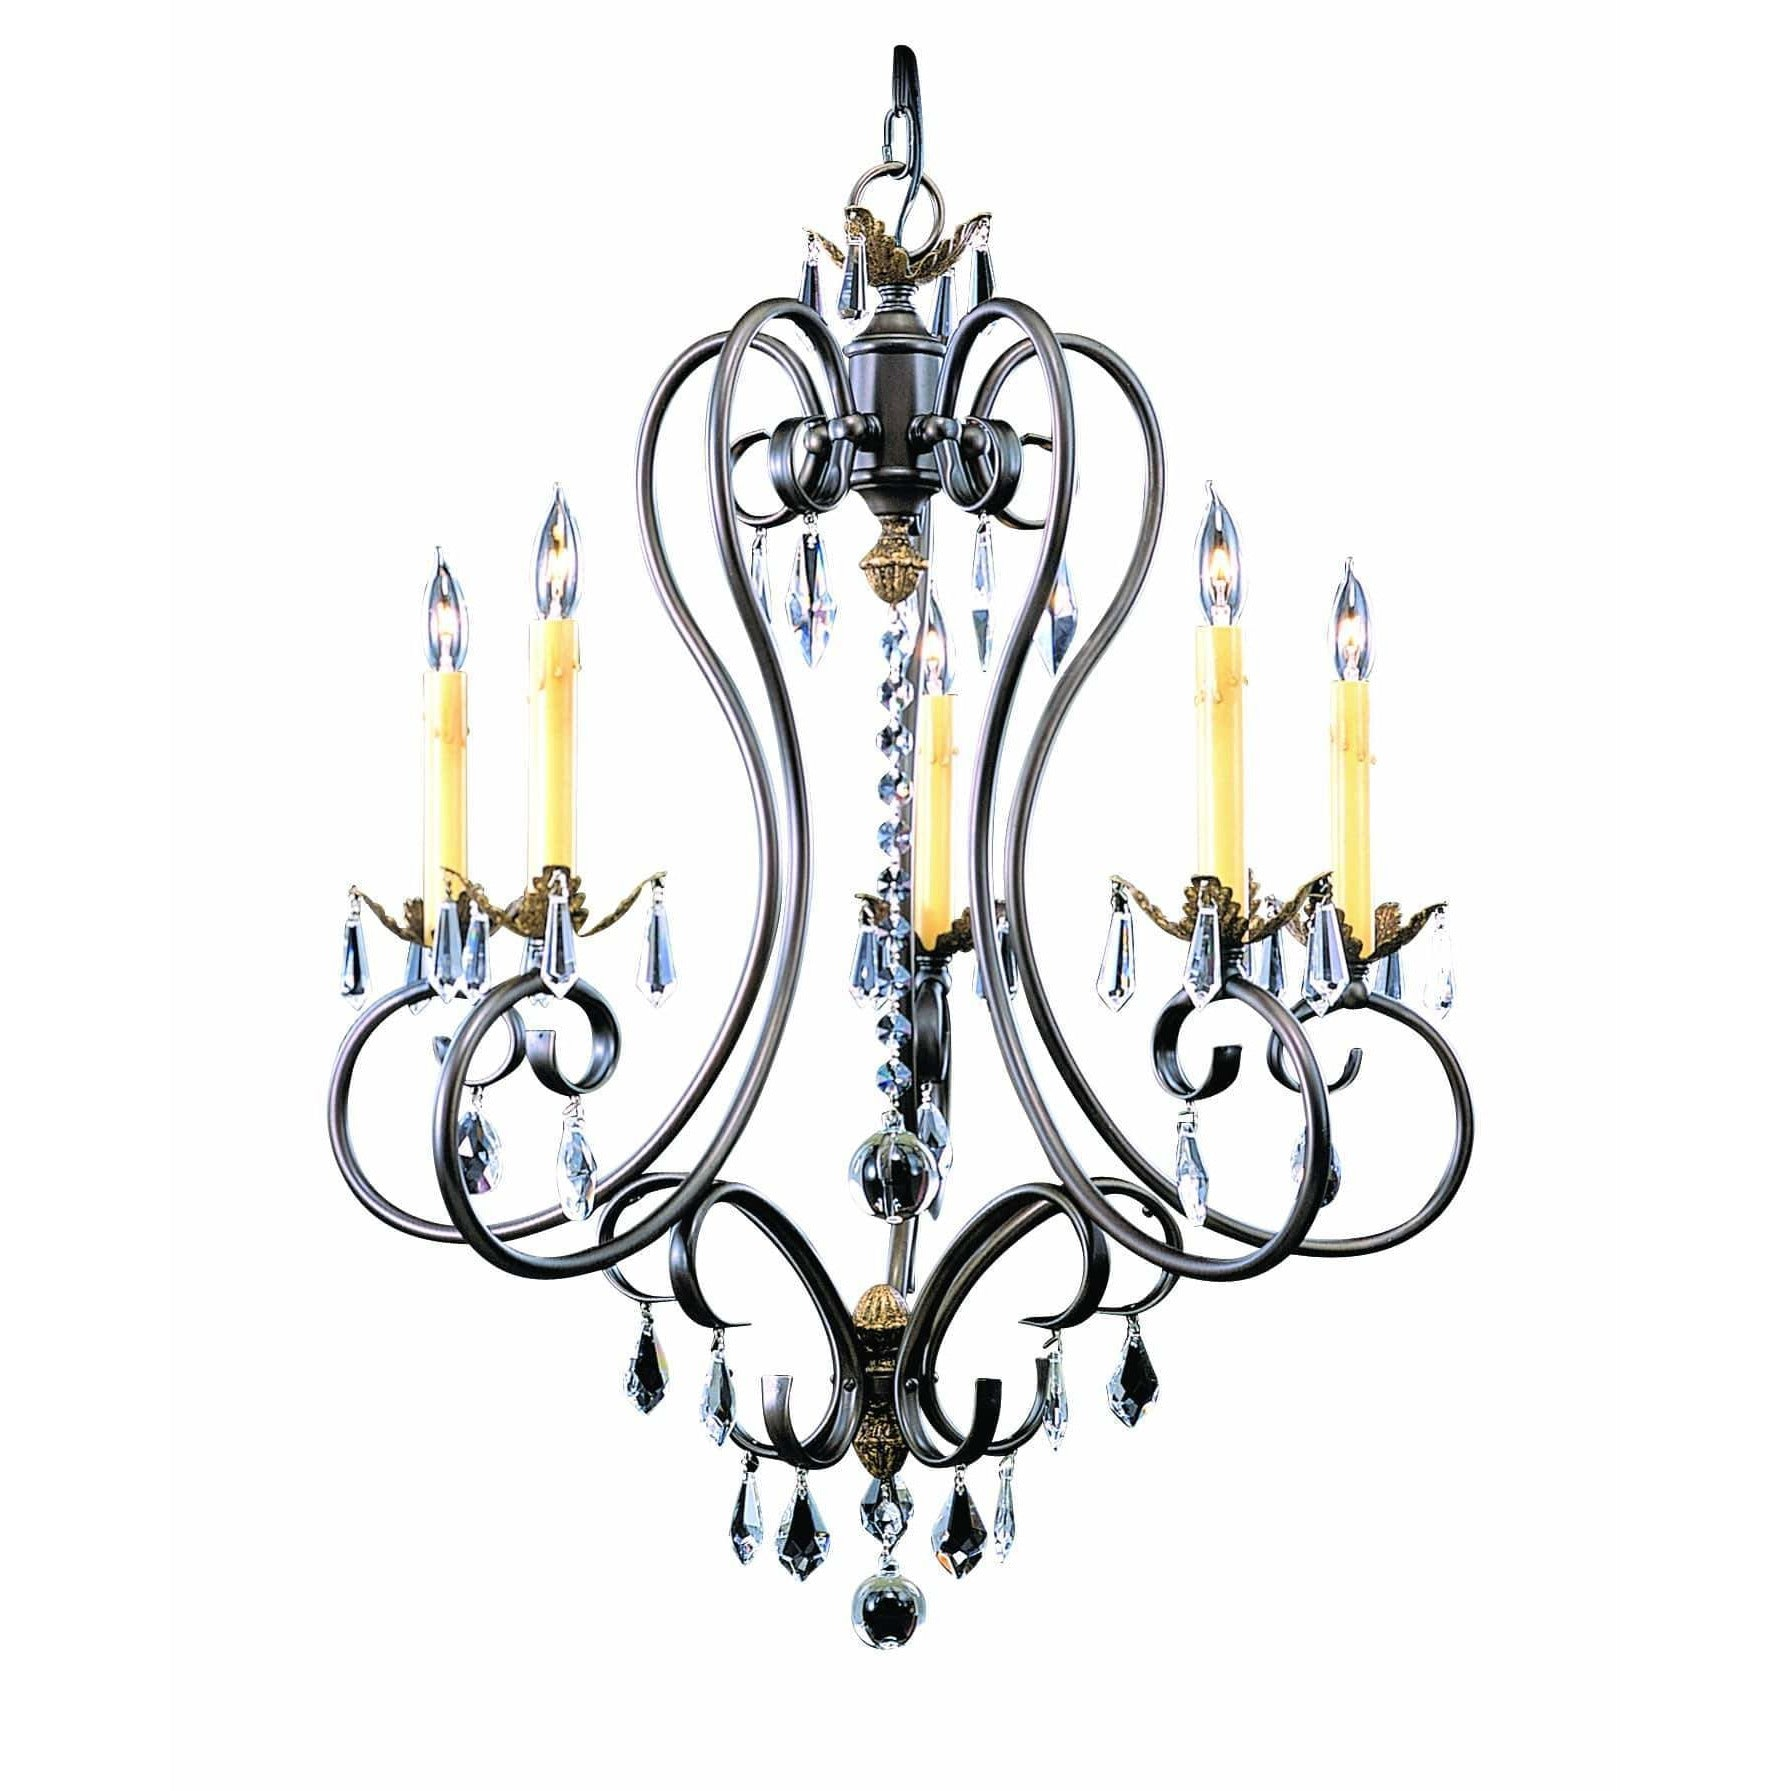 Framburg Chandeliers Mahogany Bronze 5-Light Mahogany Bronze Liebestraum Dining Chandelier by Framburg 9905